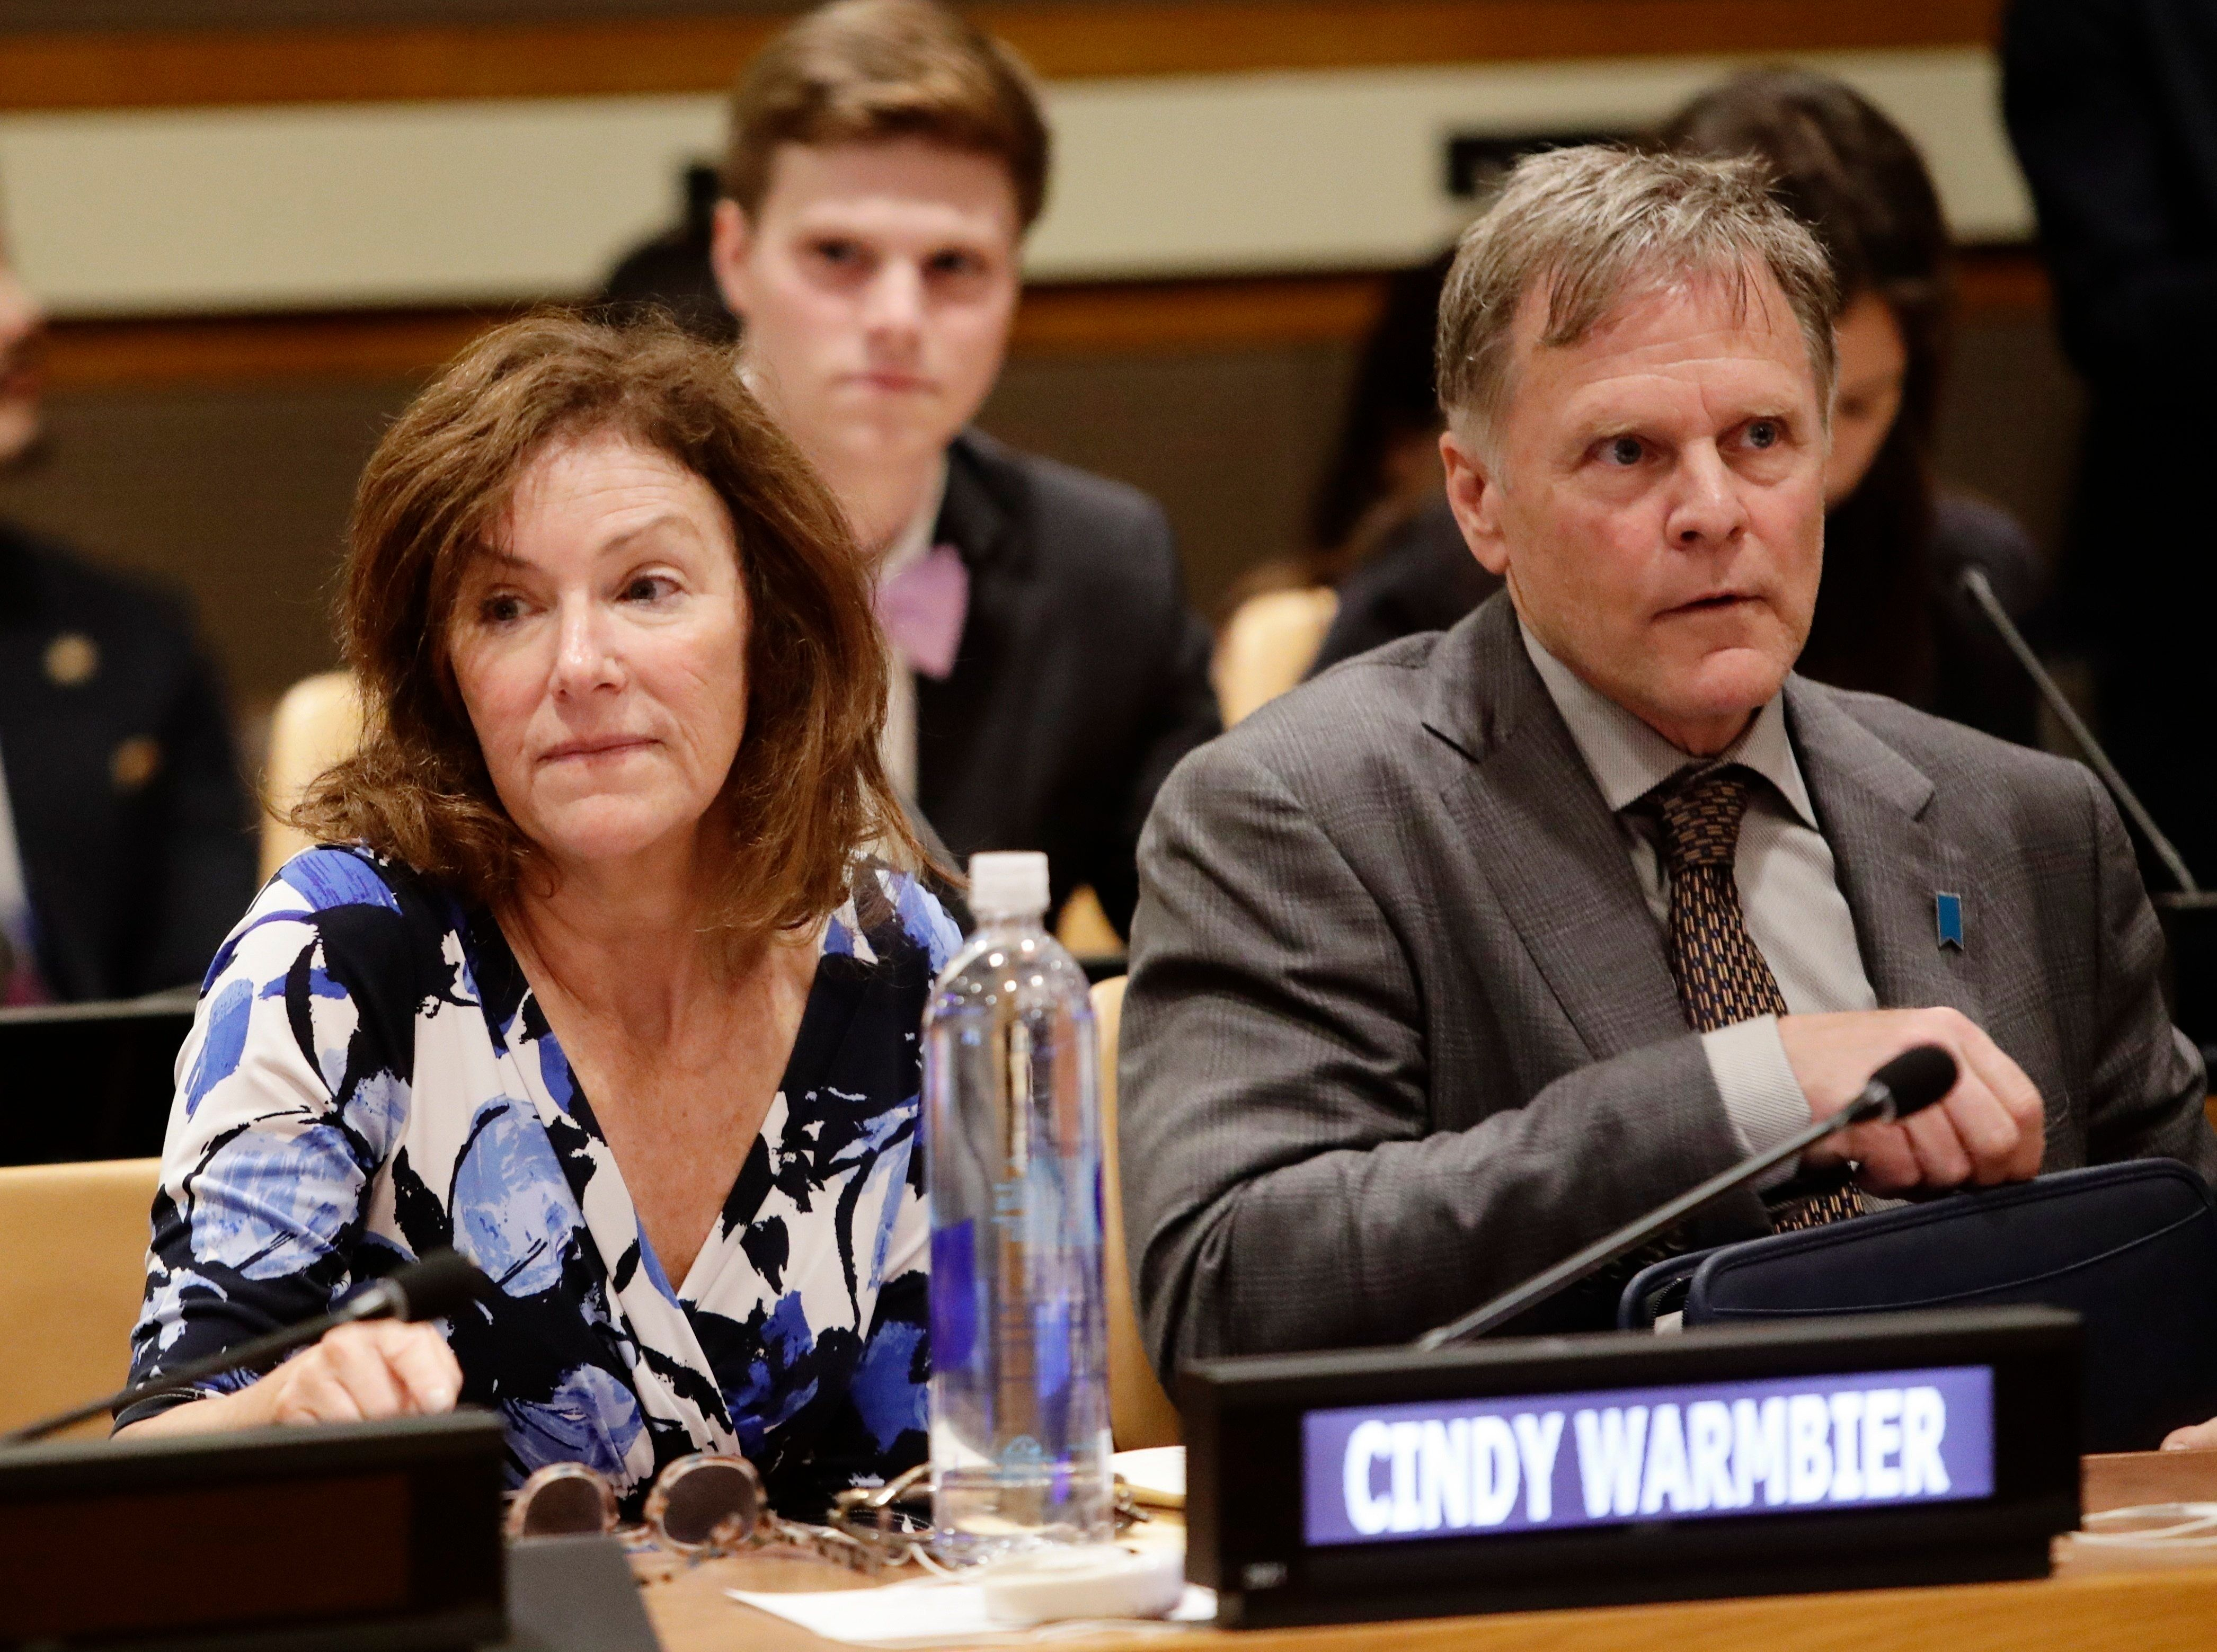 Otto Warmbier: Family given £390m payout after North Korea death